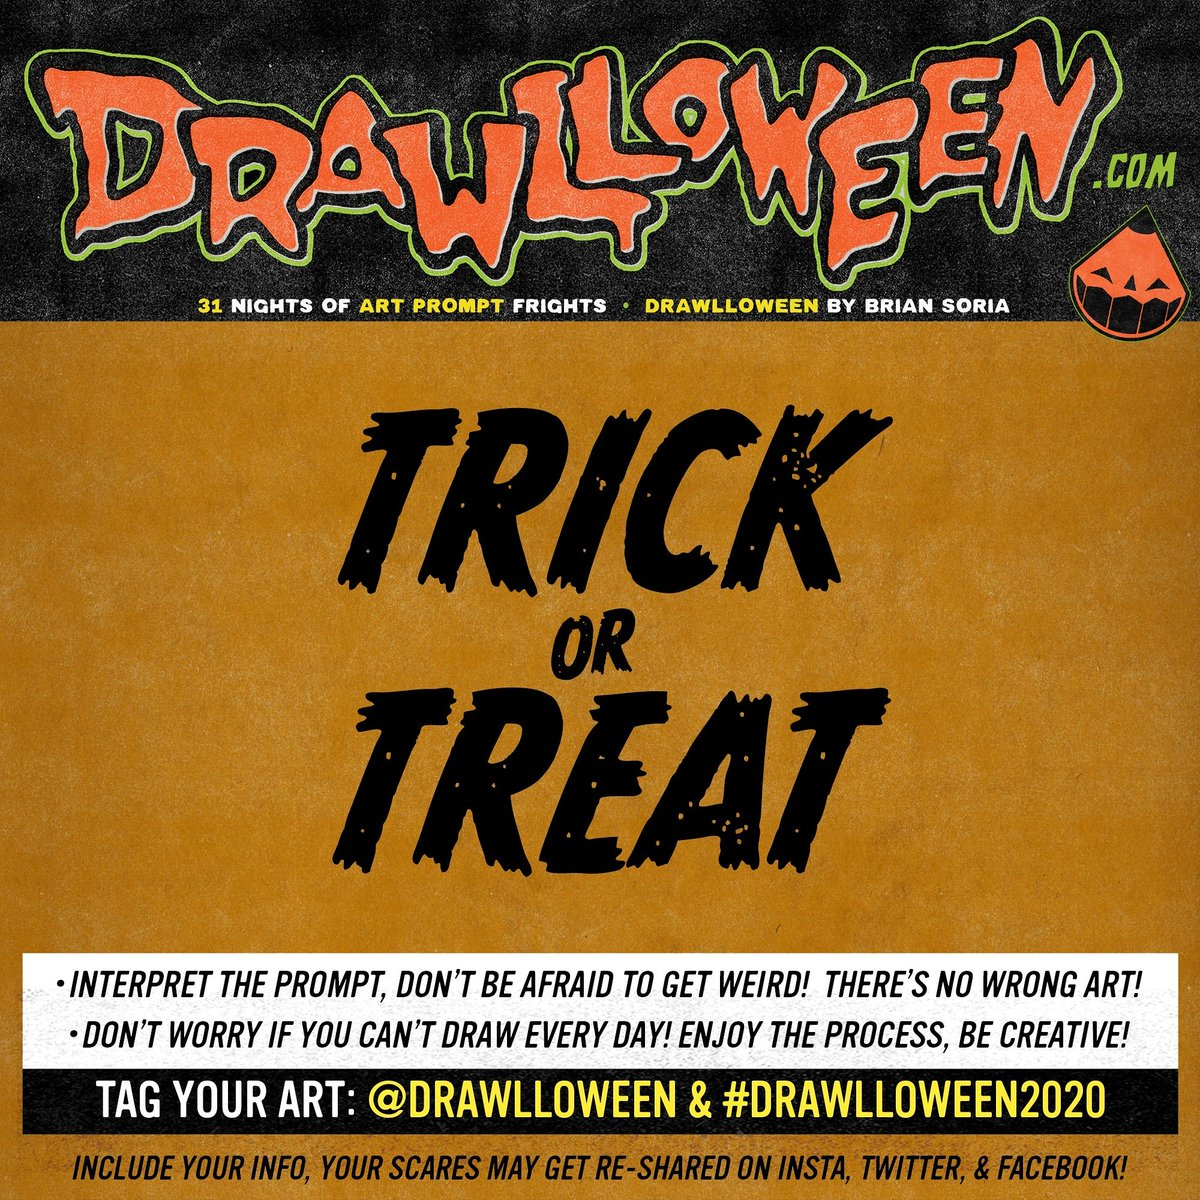 HAPPY HALLOWEEN 🎃✏️🎃✏️🎃✏️  We made it, gang! Trick or Treat, draw whatever ya want today for #Drawlloween!  Visit  for merch! Shirts for charity, enamel pins for the scaredy!  #DRAWLLOWEEN2020